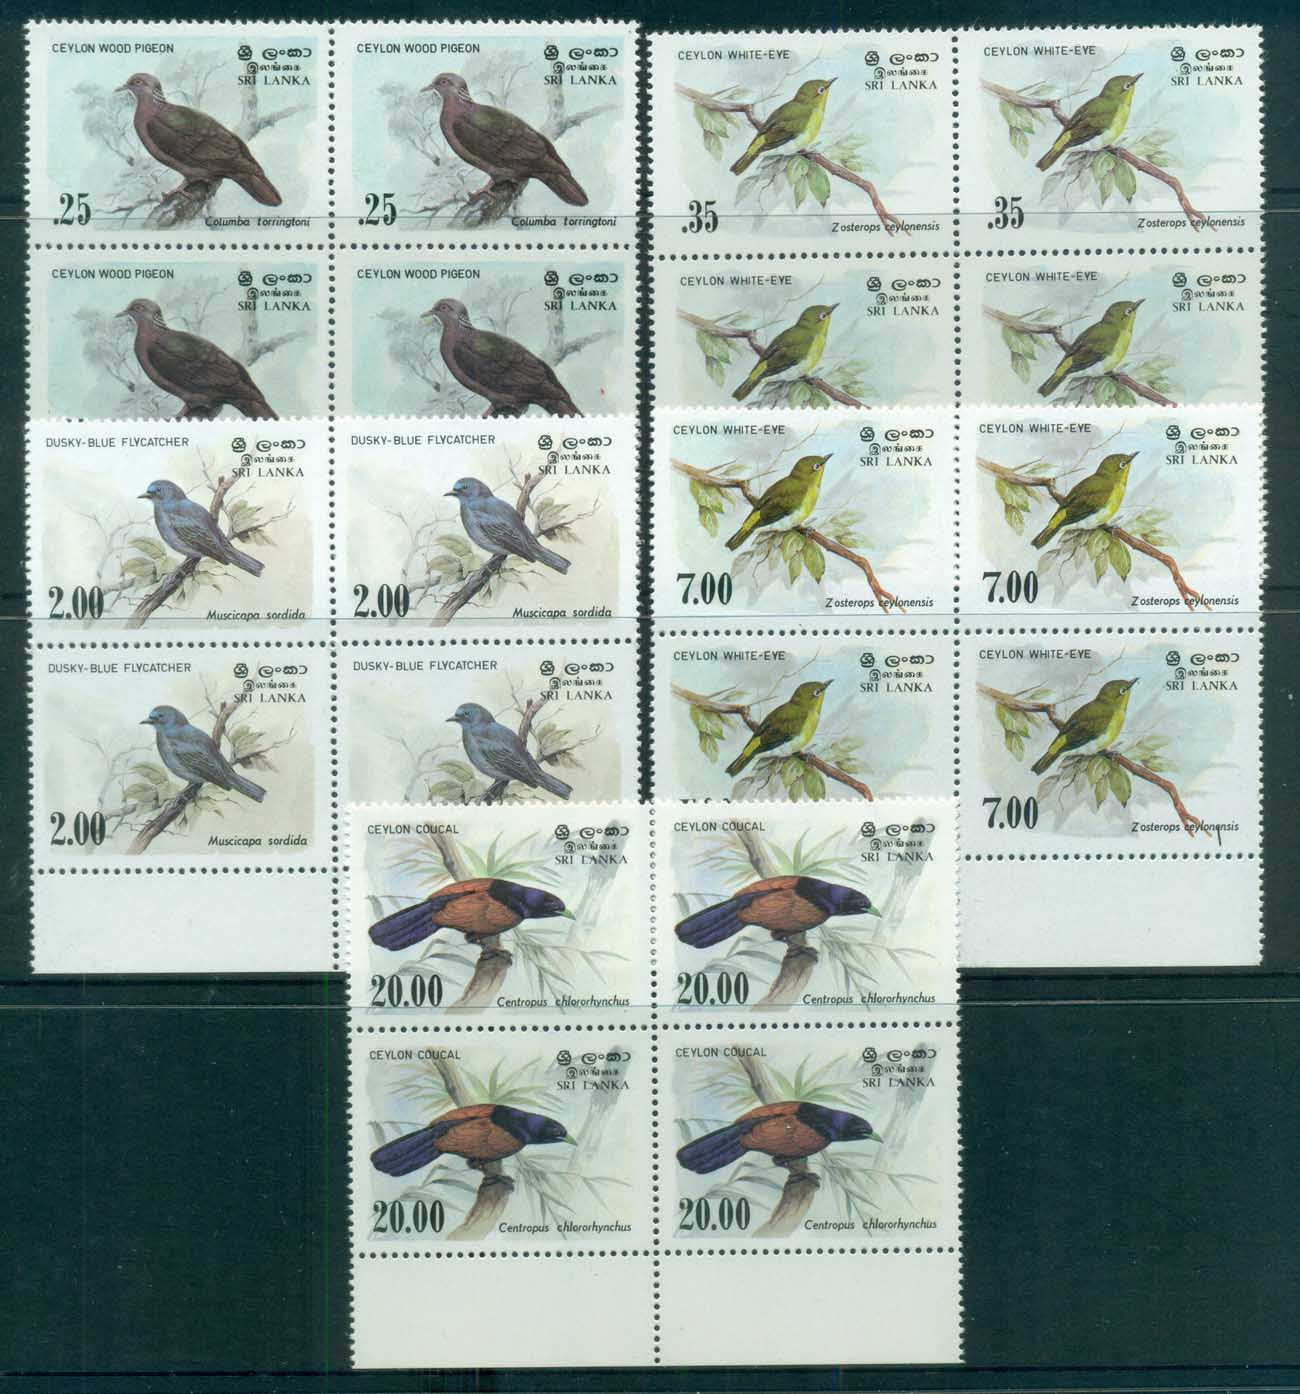 Sri Lanka 1983-88 Birds Blks 4 MUH lot82505